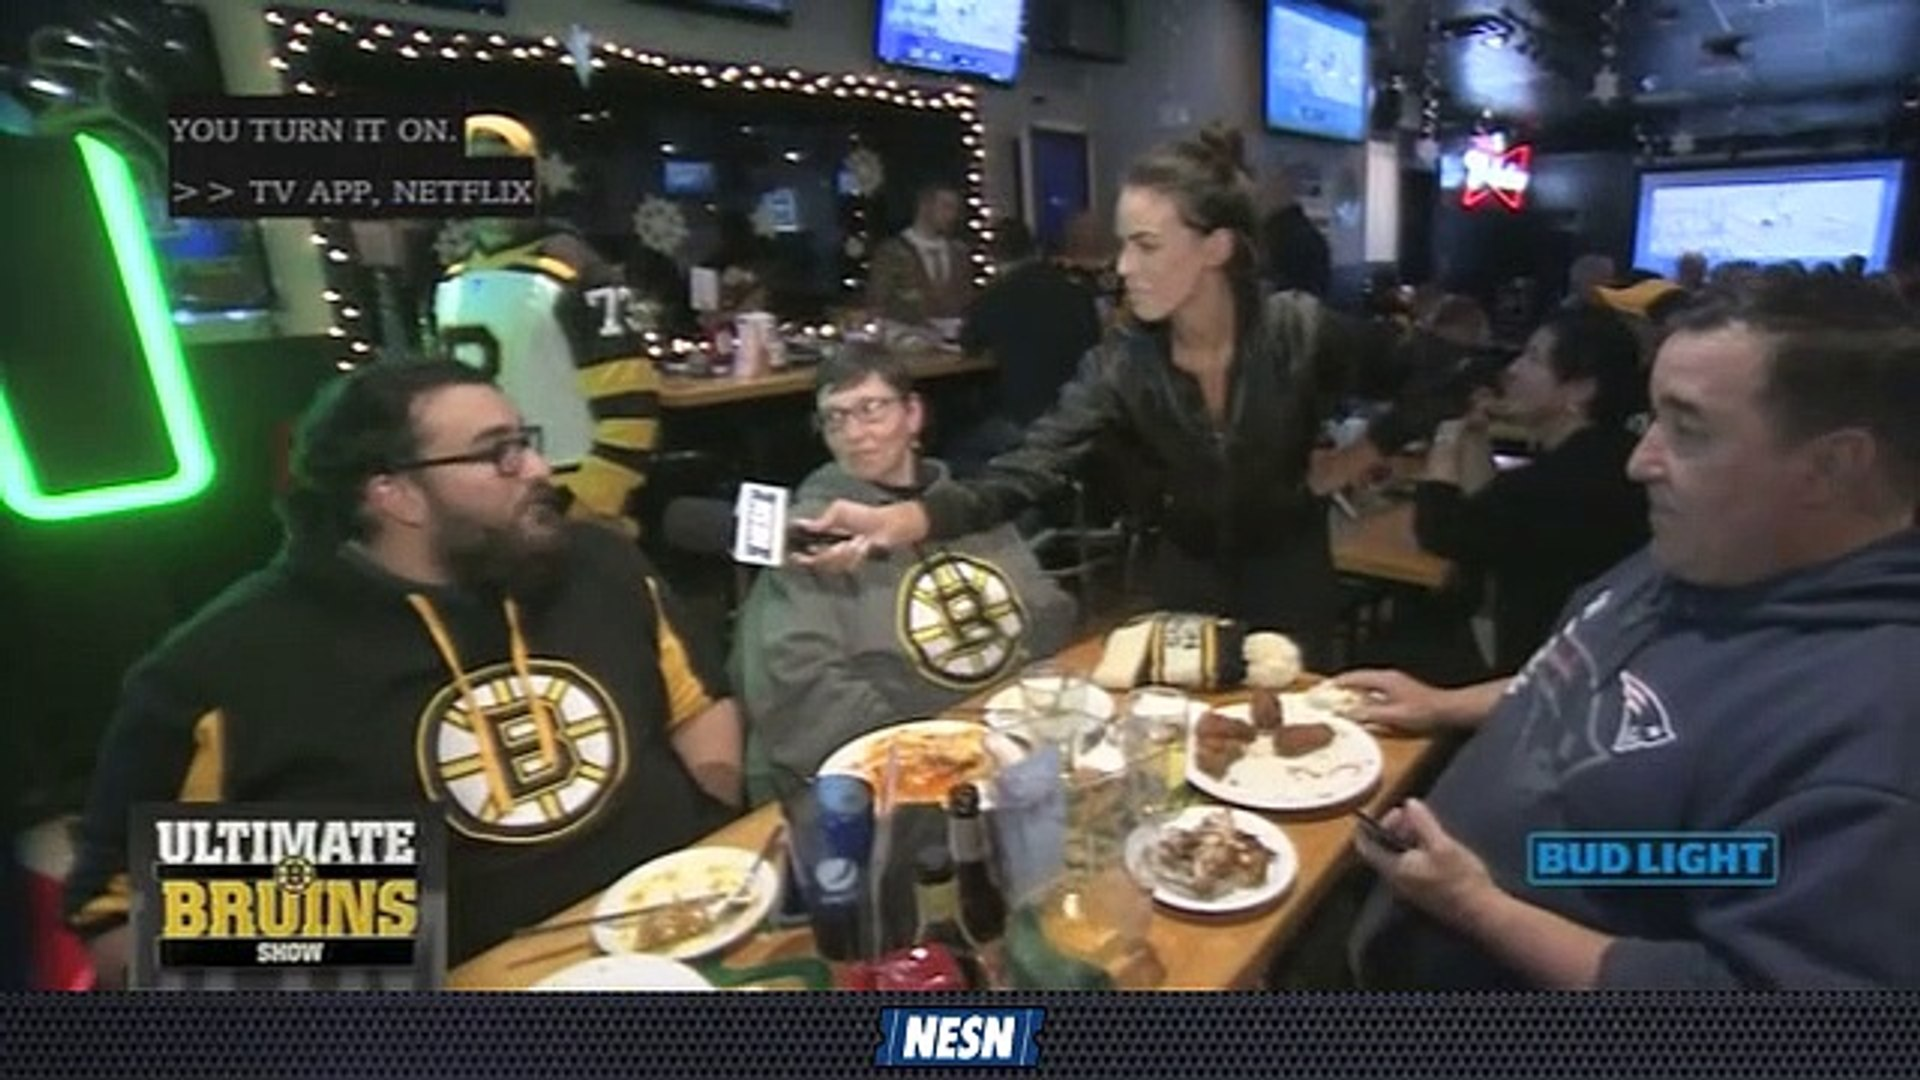 Ultimate Bruins Show: What Is Your Favorite TV/Phone App?